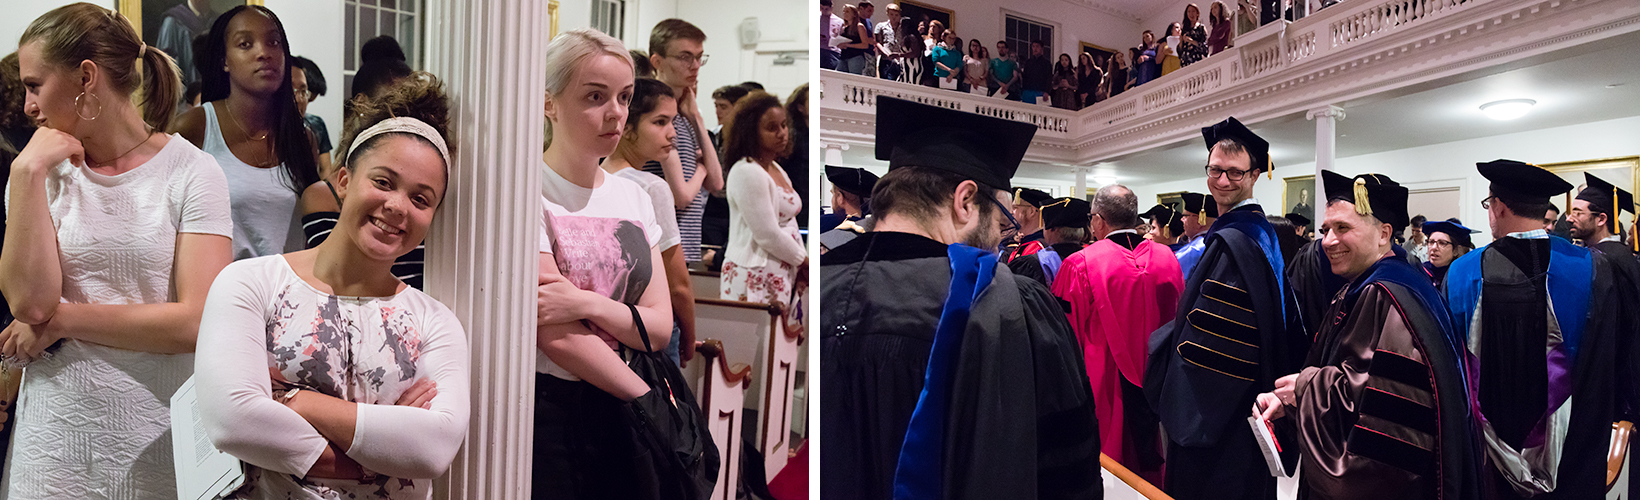 The crowd during the Convocation ceremony in Johnson Chapel